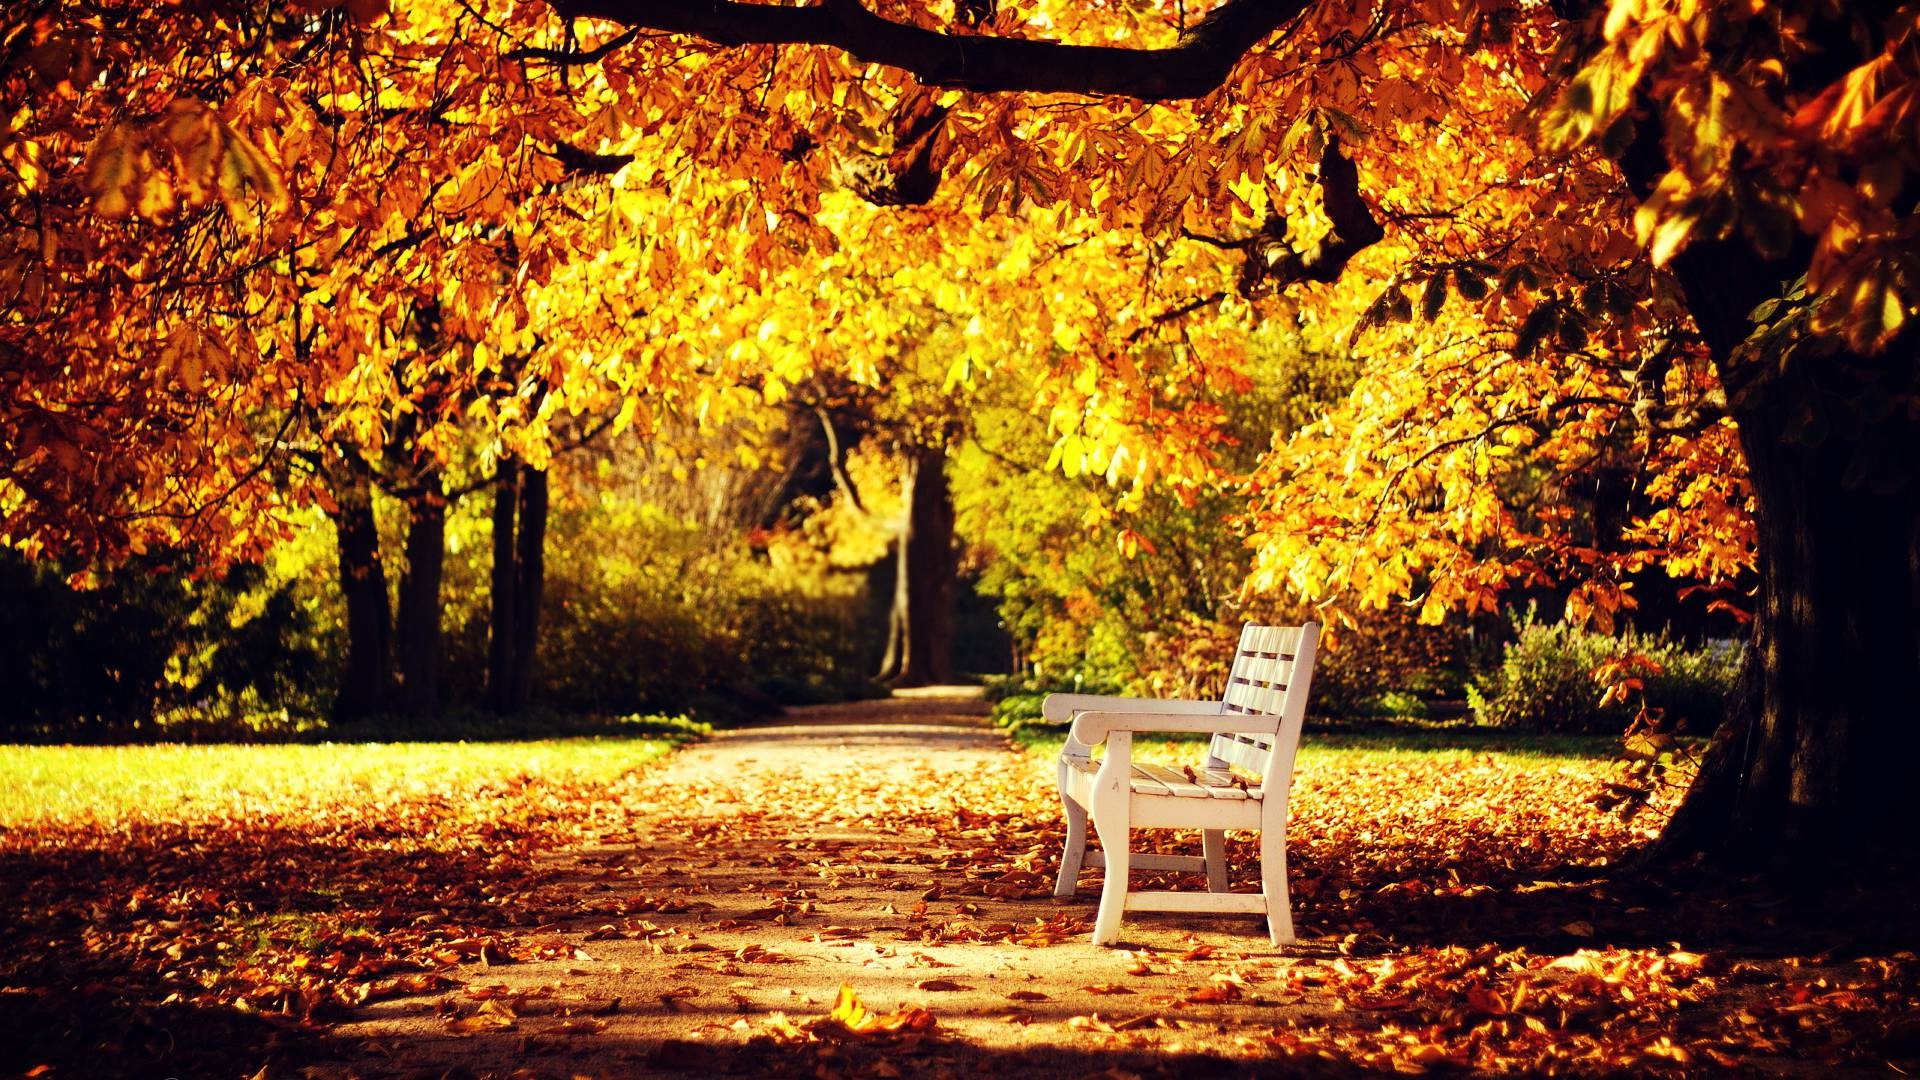 Autumn Hd Wallpapers 1080p 76 Images